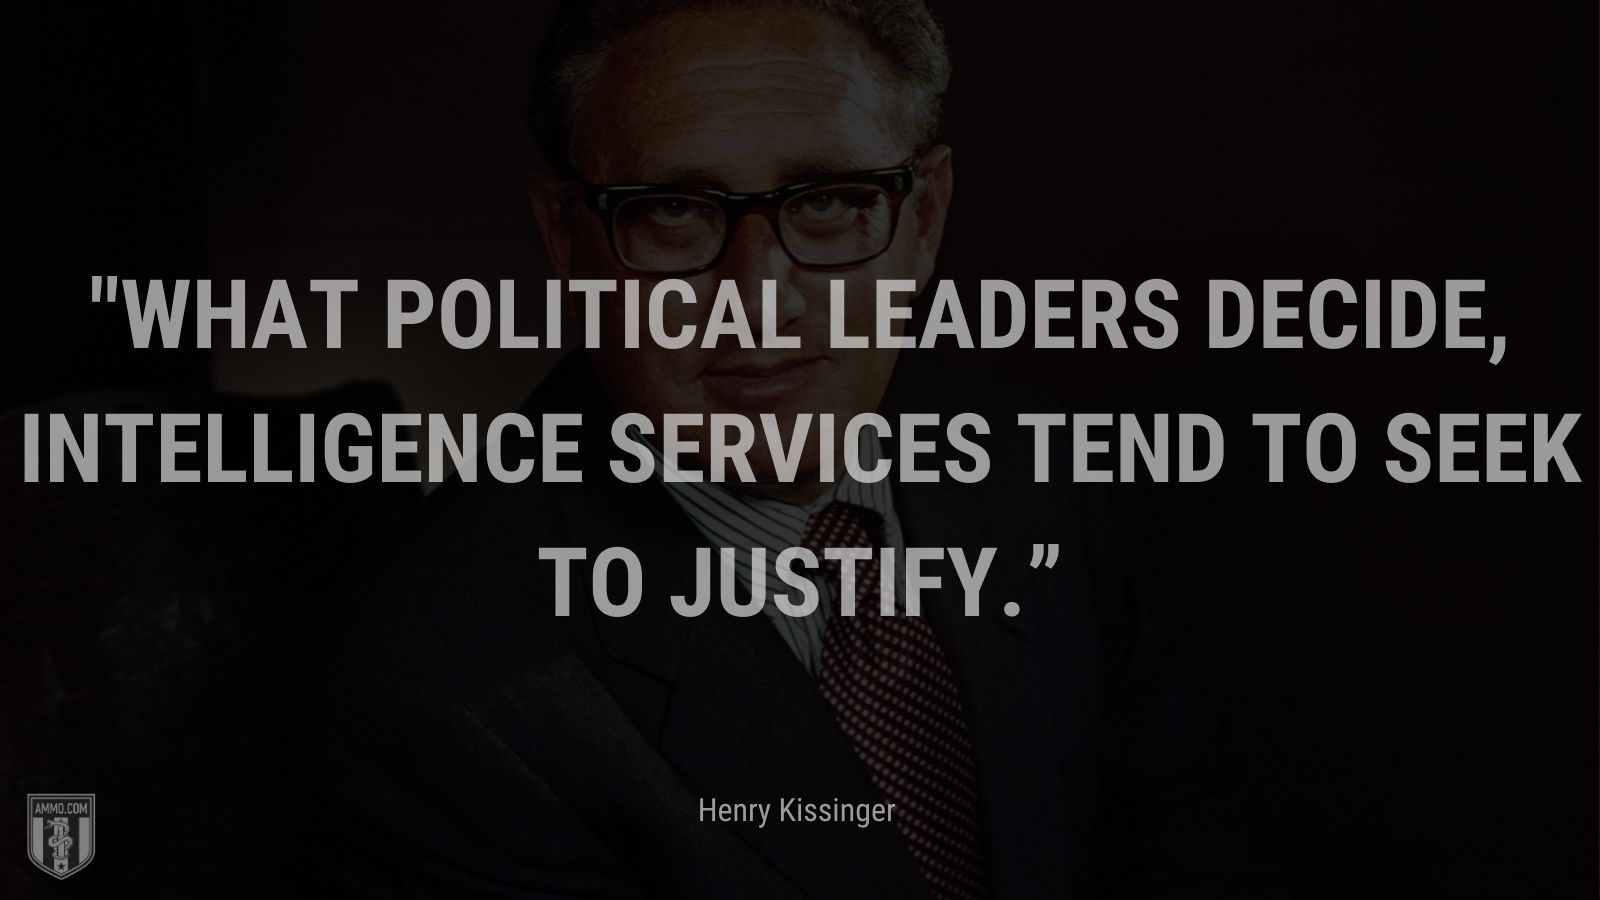 """""""What political leaders decide, intelligence services tend to seek to justify."""" - Henry Kissinger"""